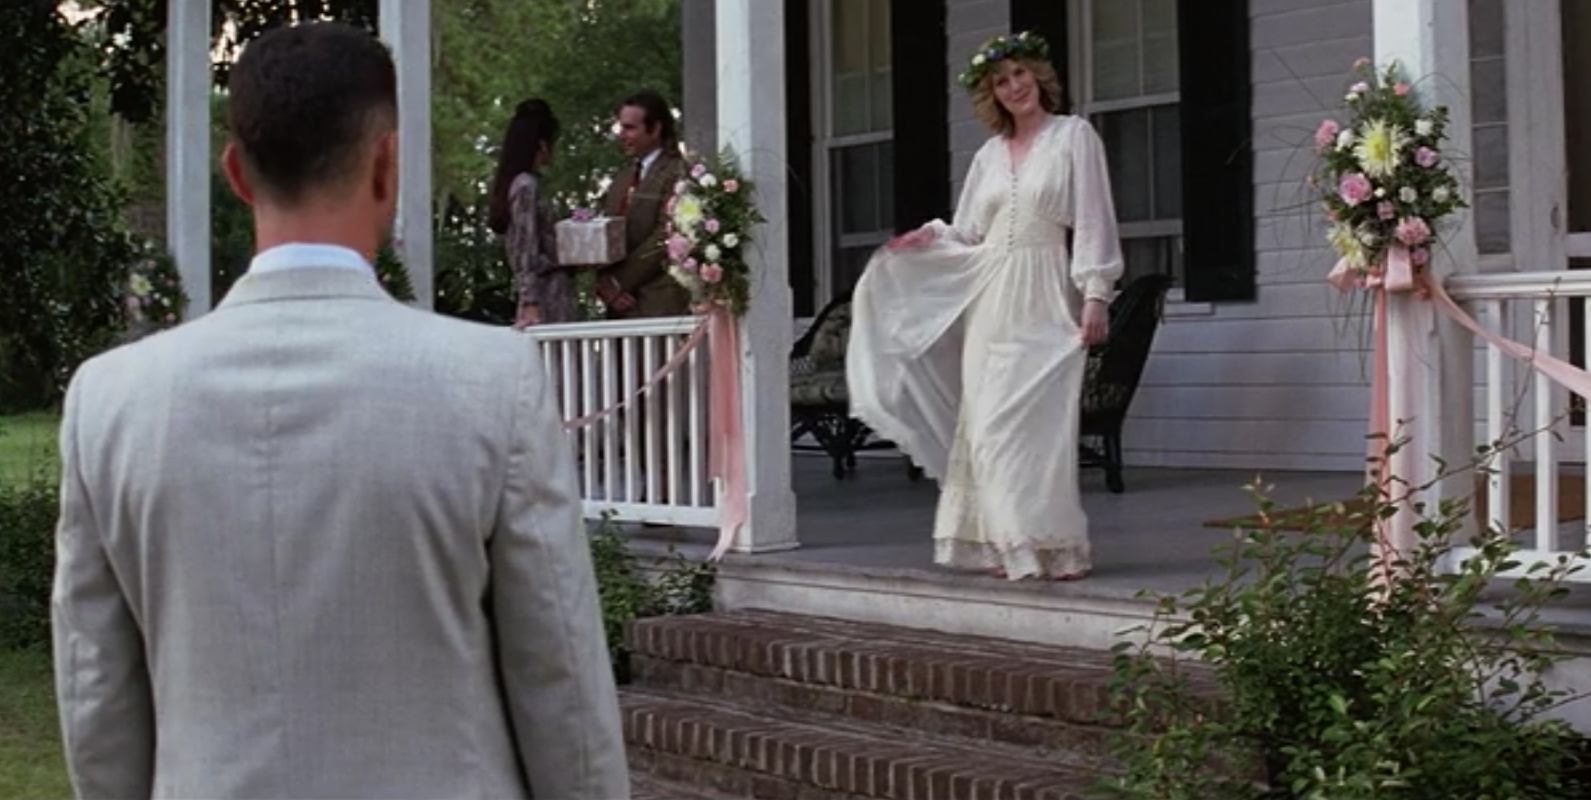 RX_1612_Iconic Southern Wedding Dresses_Jenny Curran (Forrest Gump)